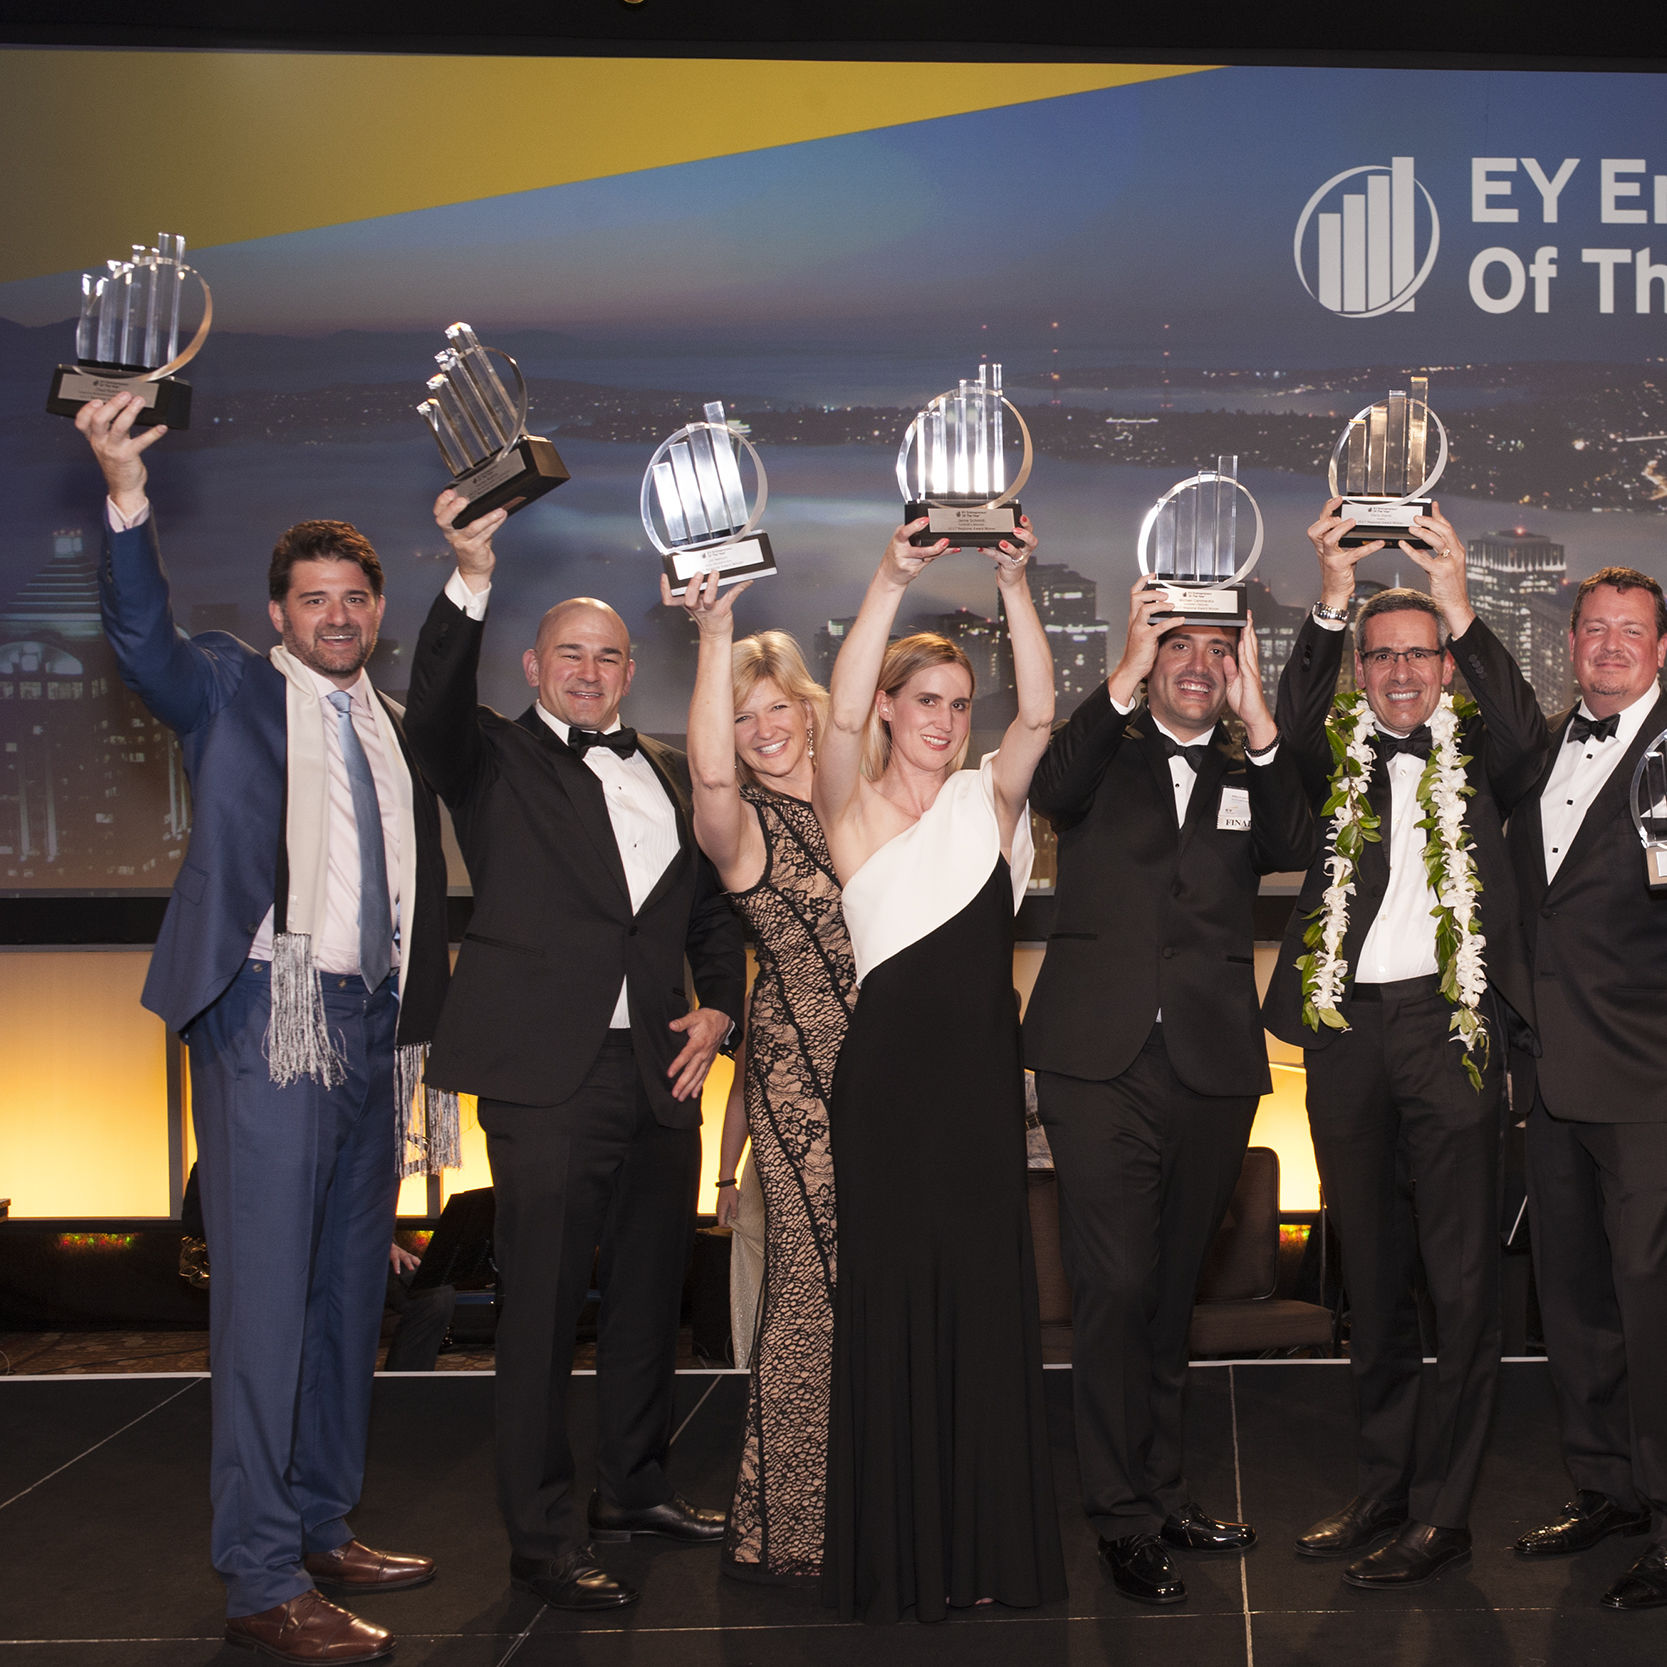 Entrepreneur of the year 2017 pacific northwest region winners  chad and harlan robins  jill nelson  jaime schmidt and michael cammarata  chris diorio  rodell notbohm  stein kruse  rick and david cantu yafxha